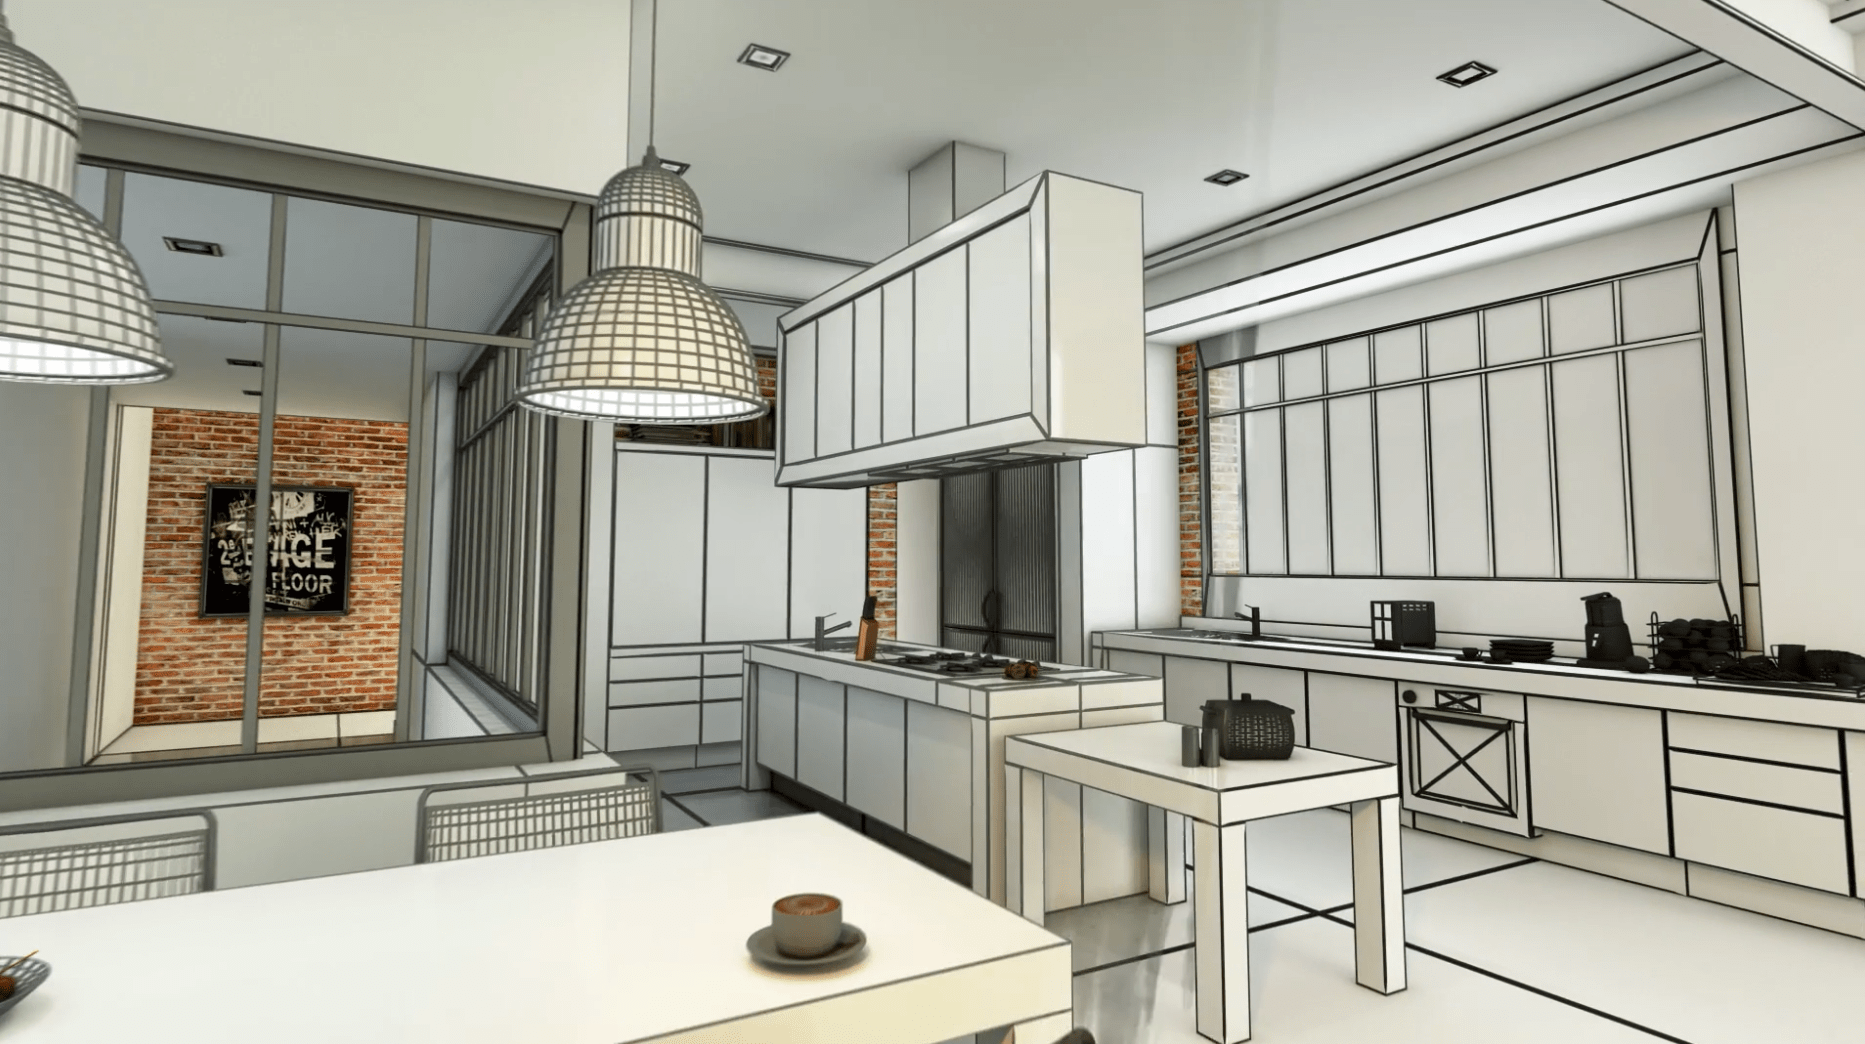 Kitchen remodel project planning